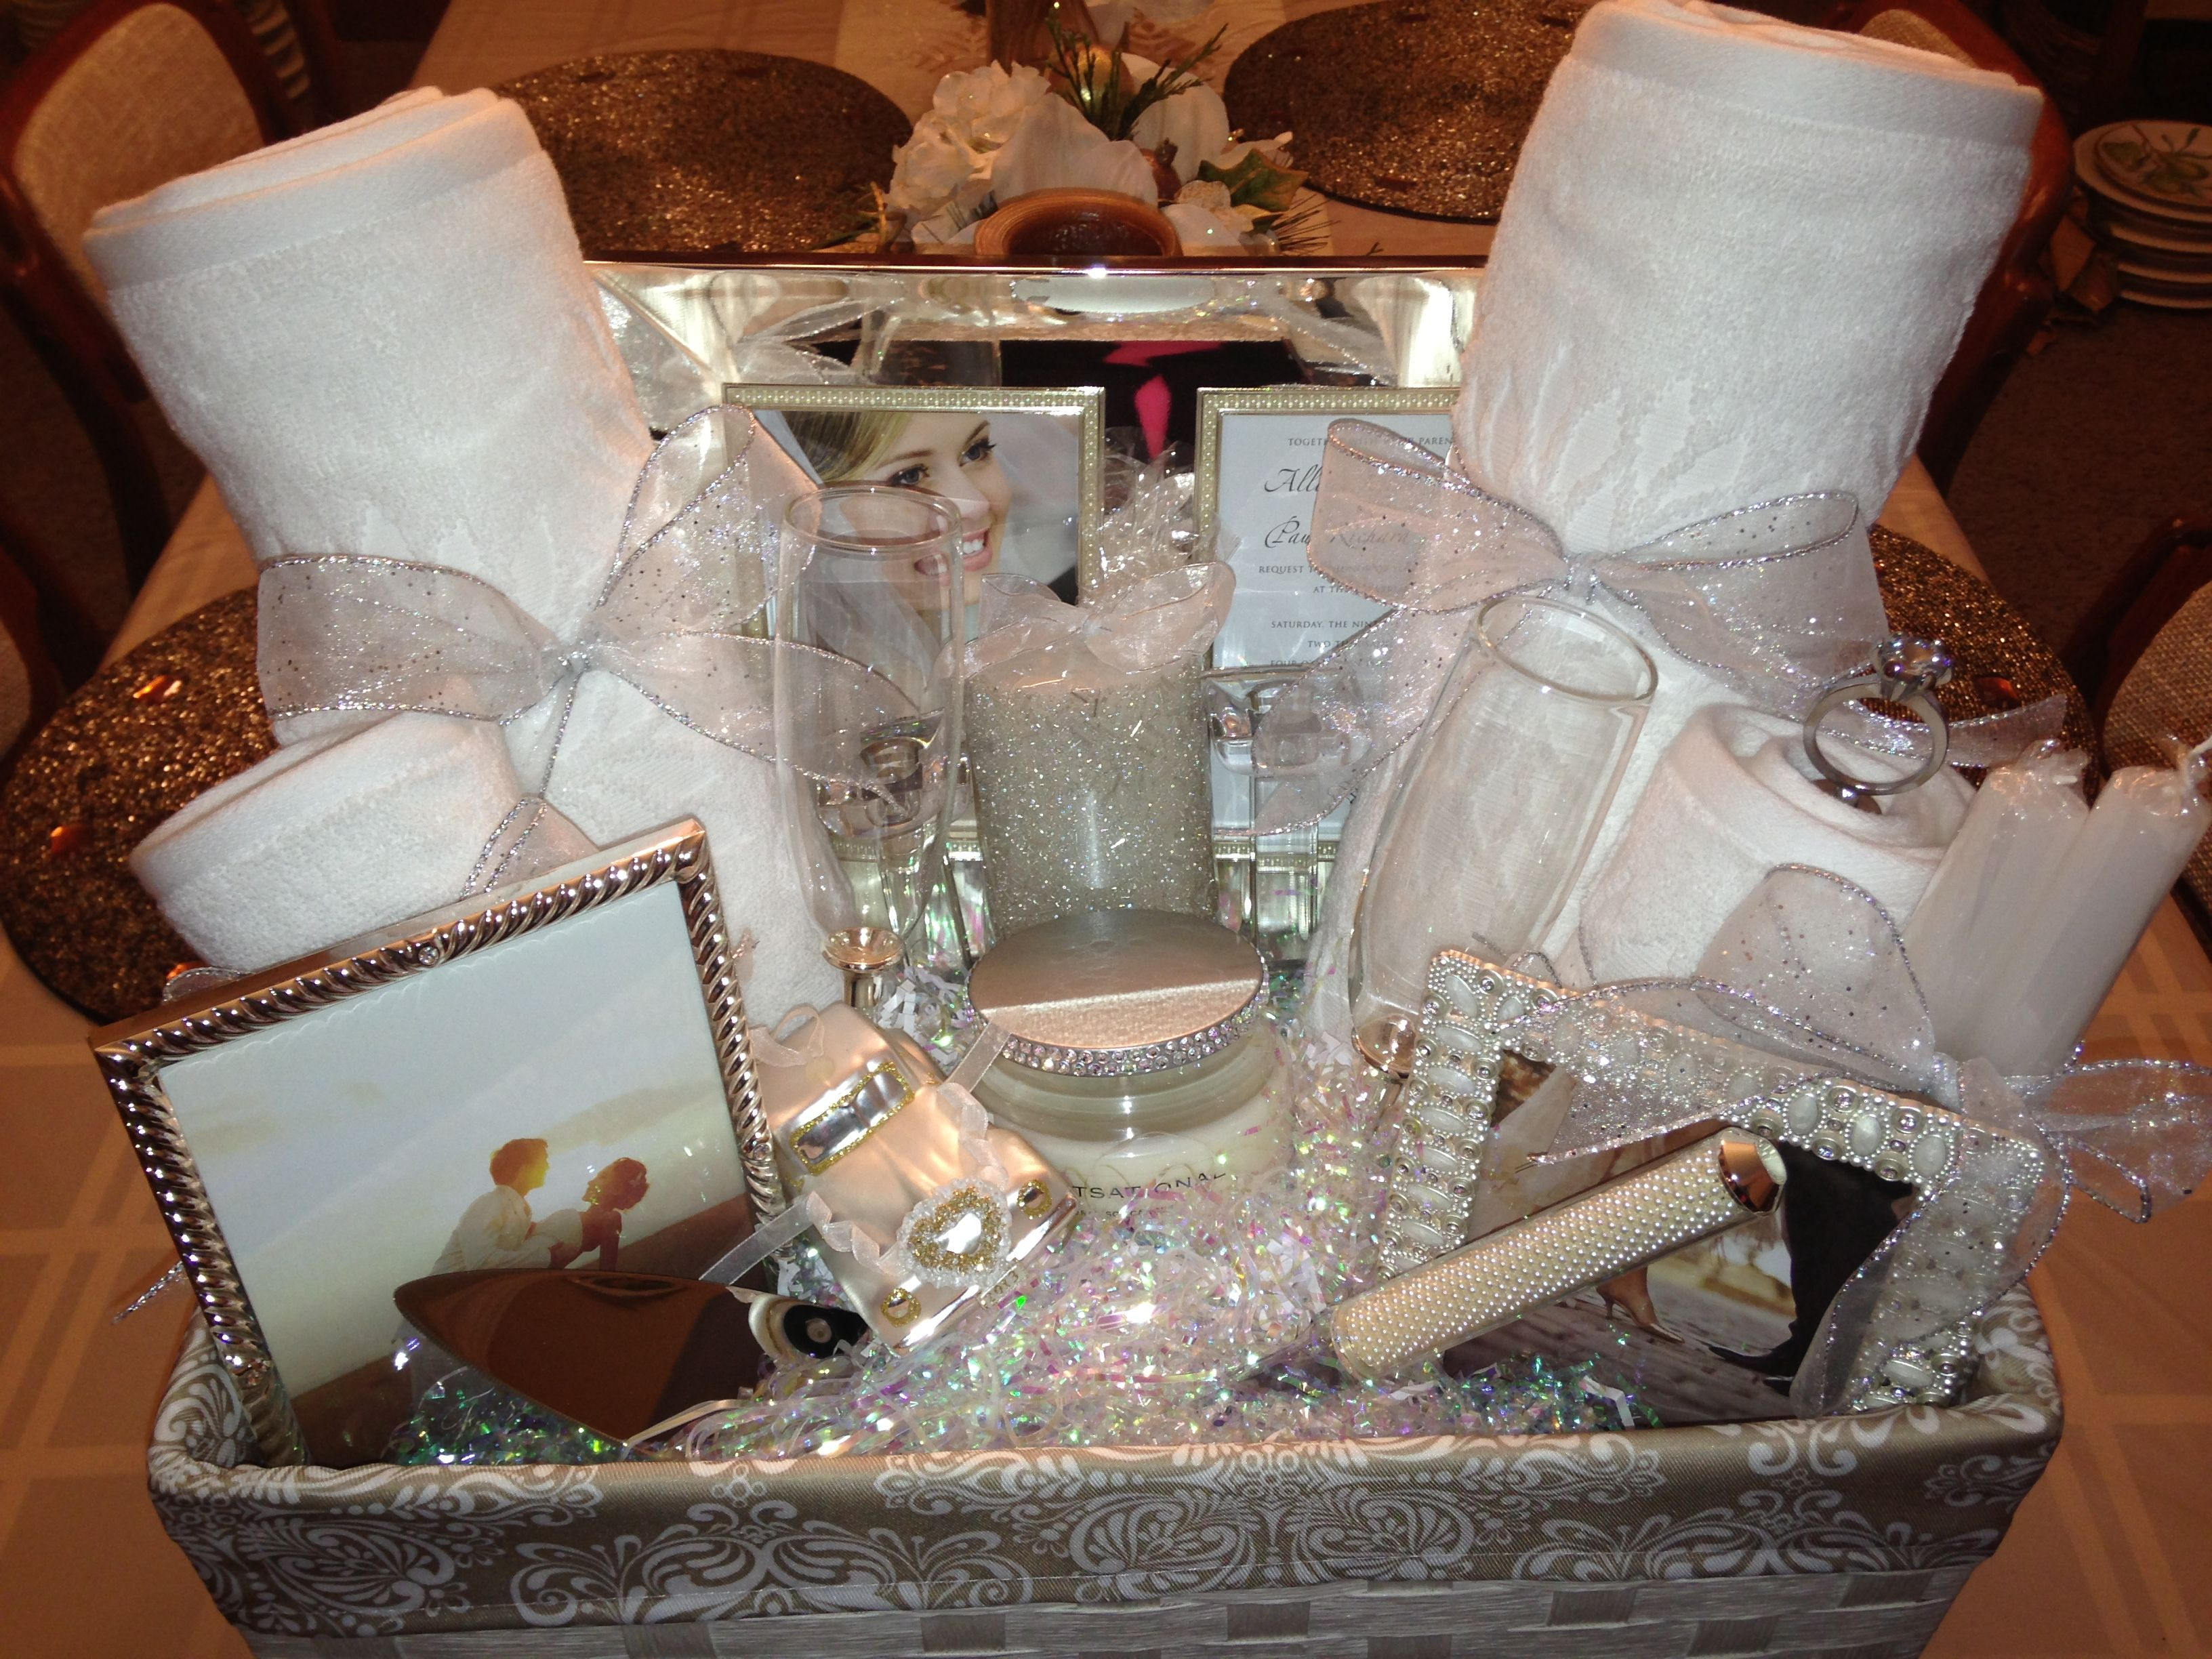 Bridal Shower Gift Basket Ideas For Bride : Bridal shower gift basket ideas. Ideasthatsparkle.com on how to do ...